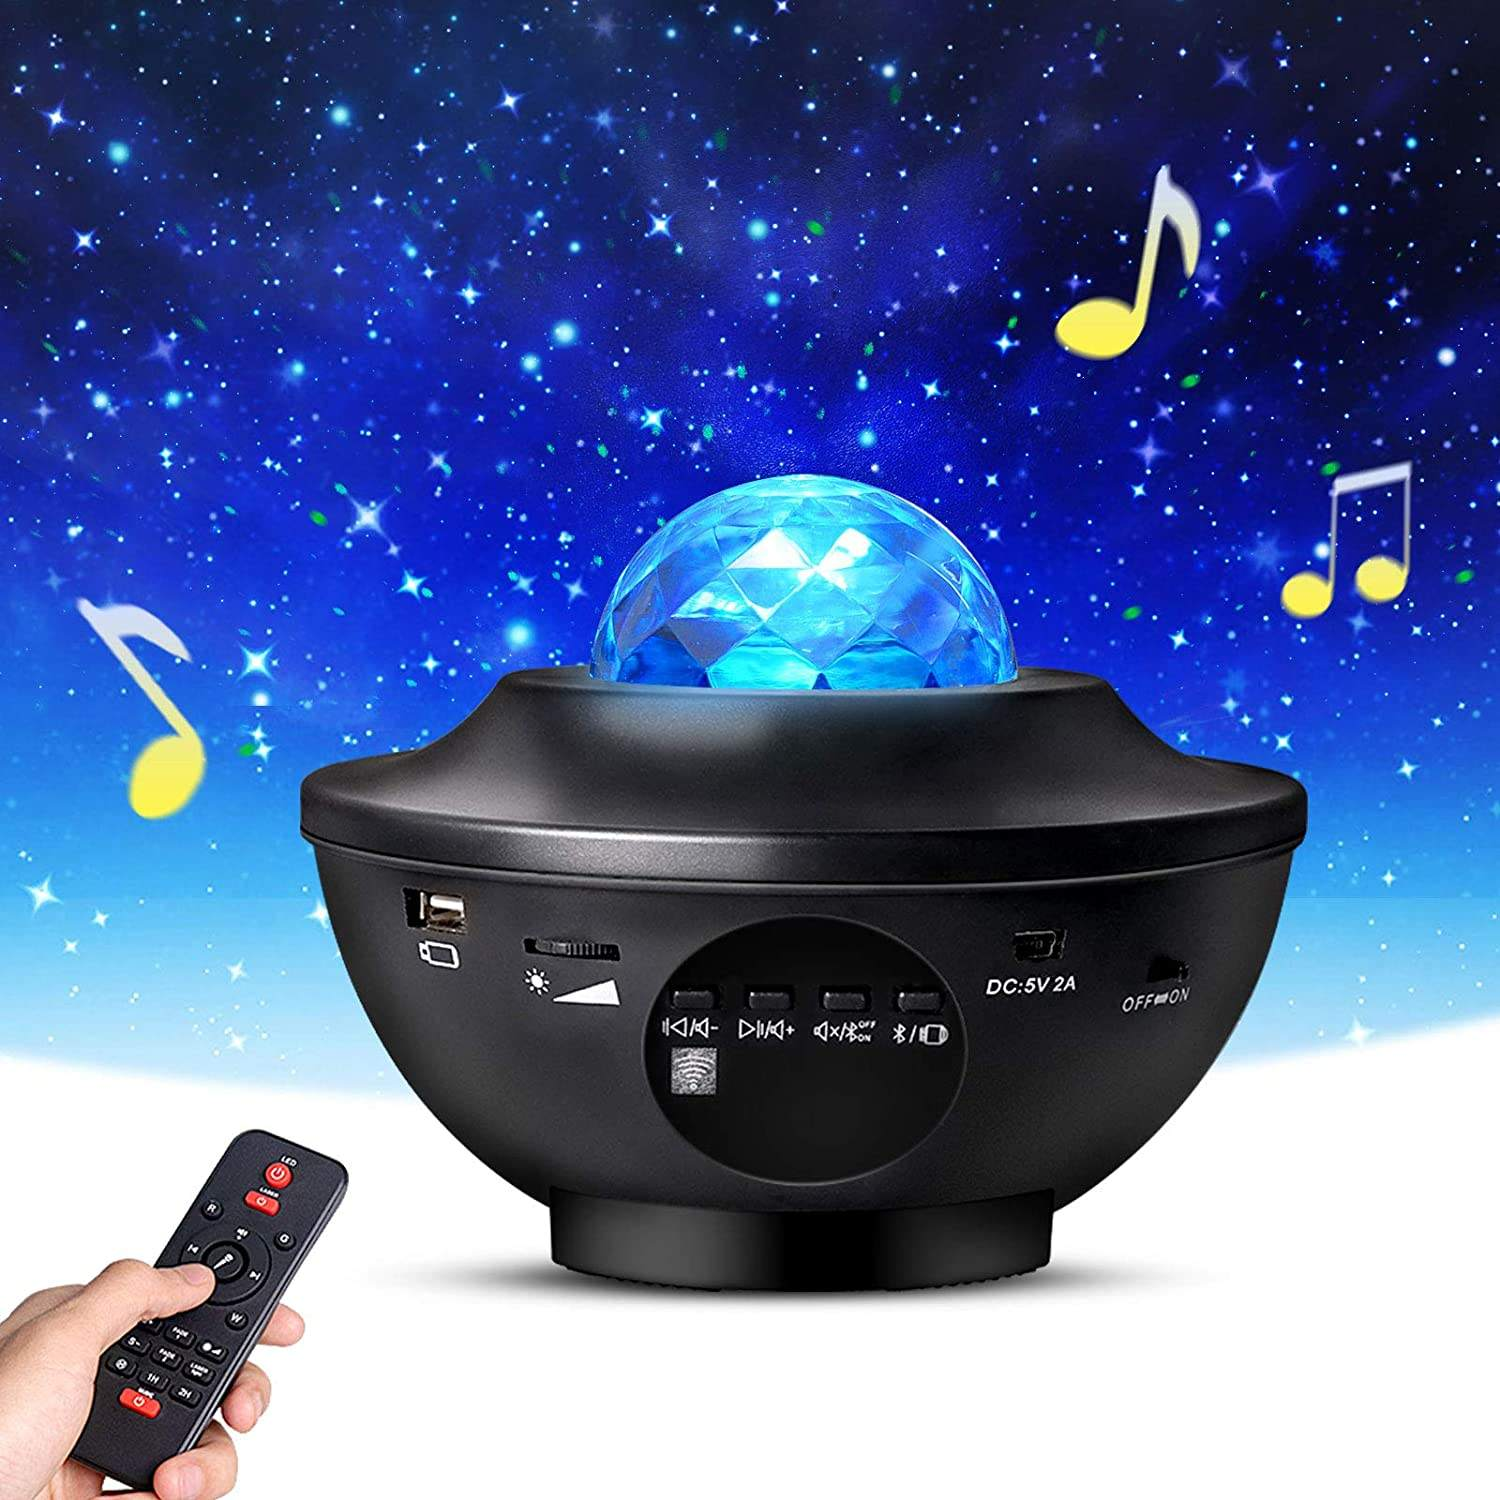 Star Projector,SkyProjector with Remote Control, Night Light Projector with LED Nebula Cloud/Moving Ocean Wave